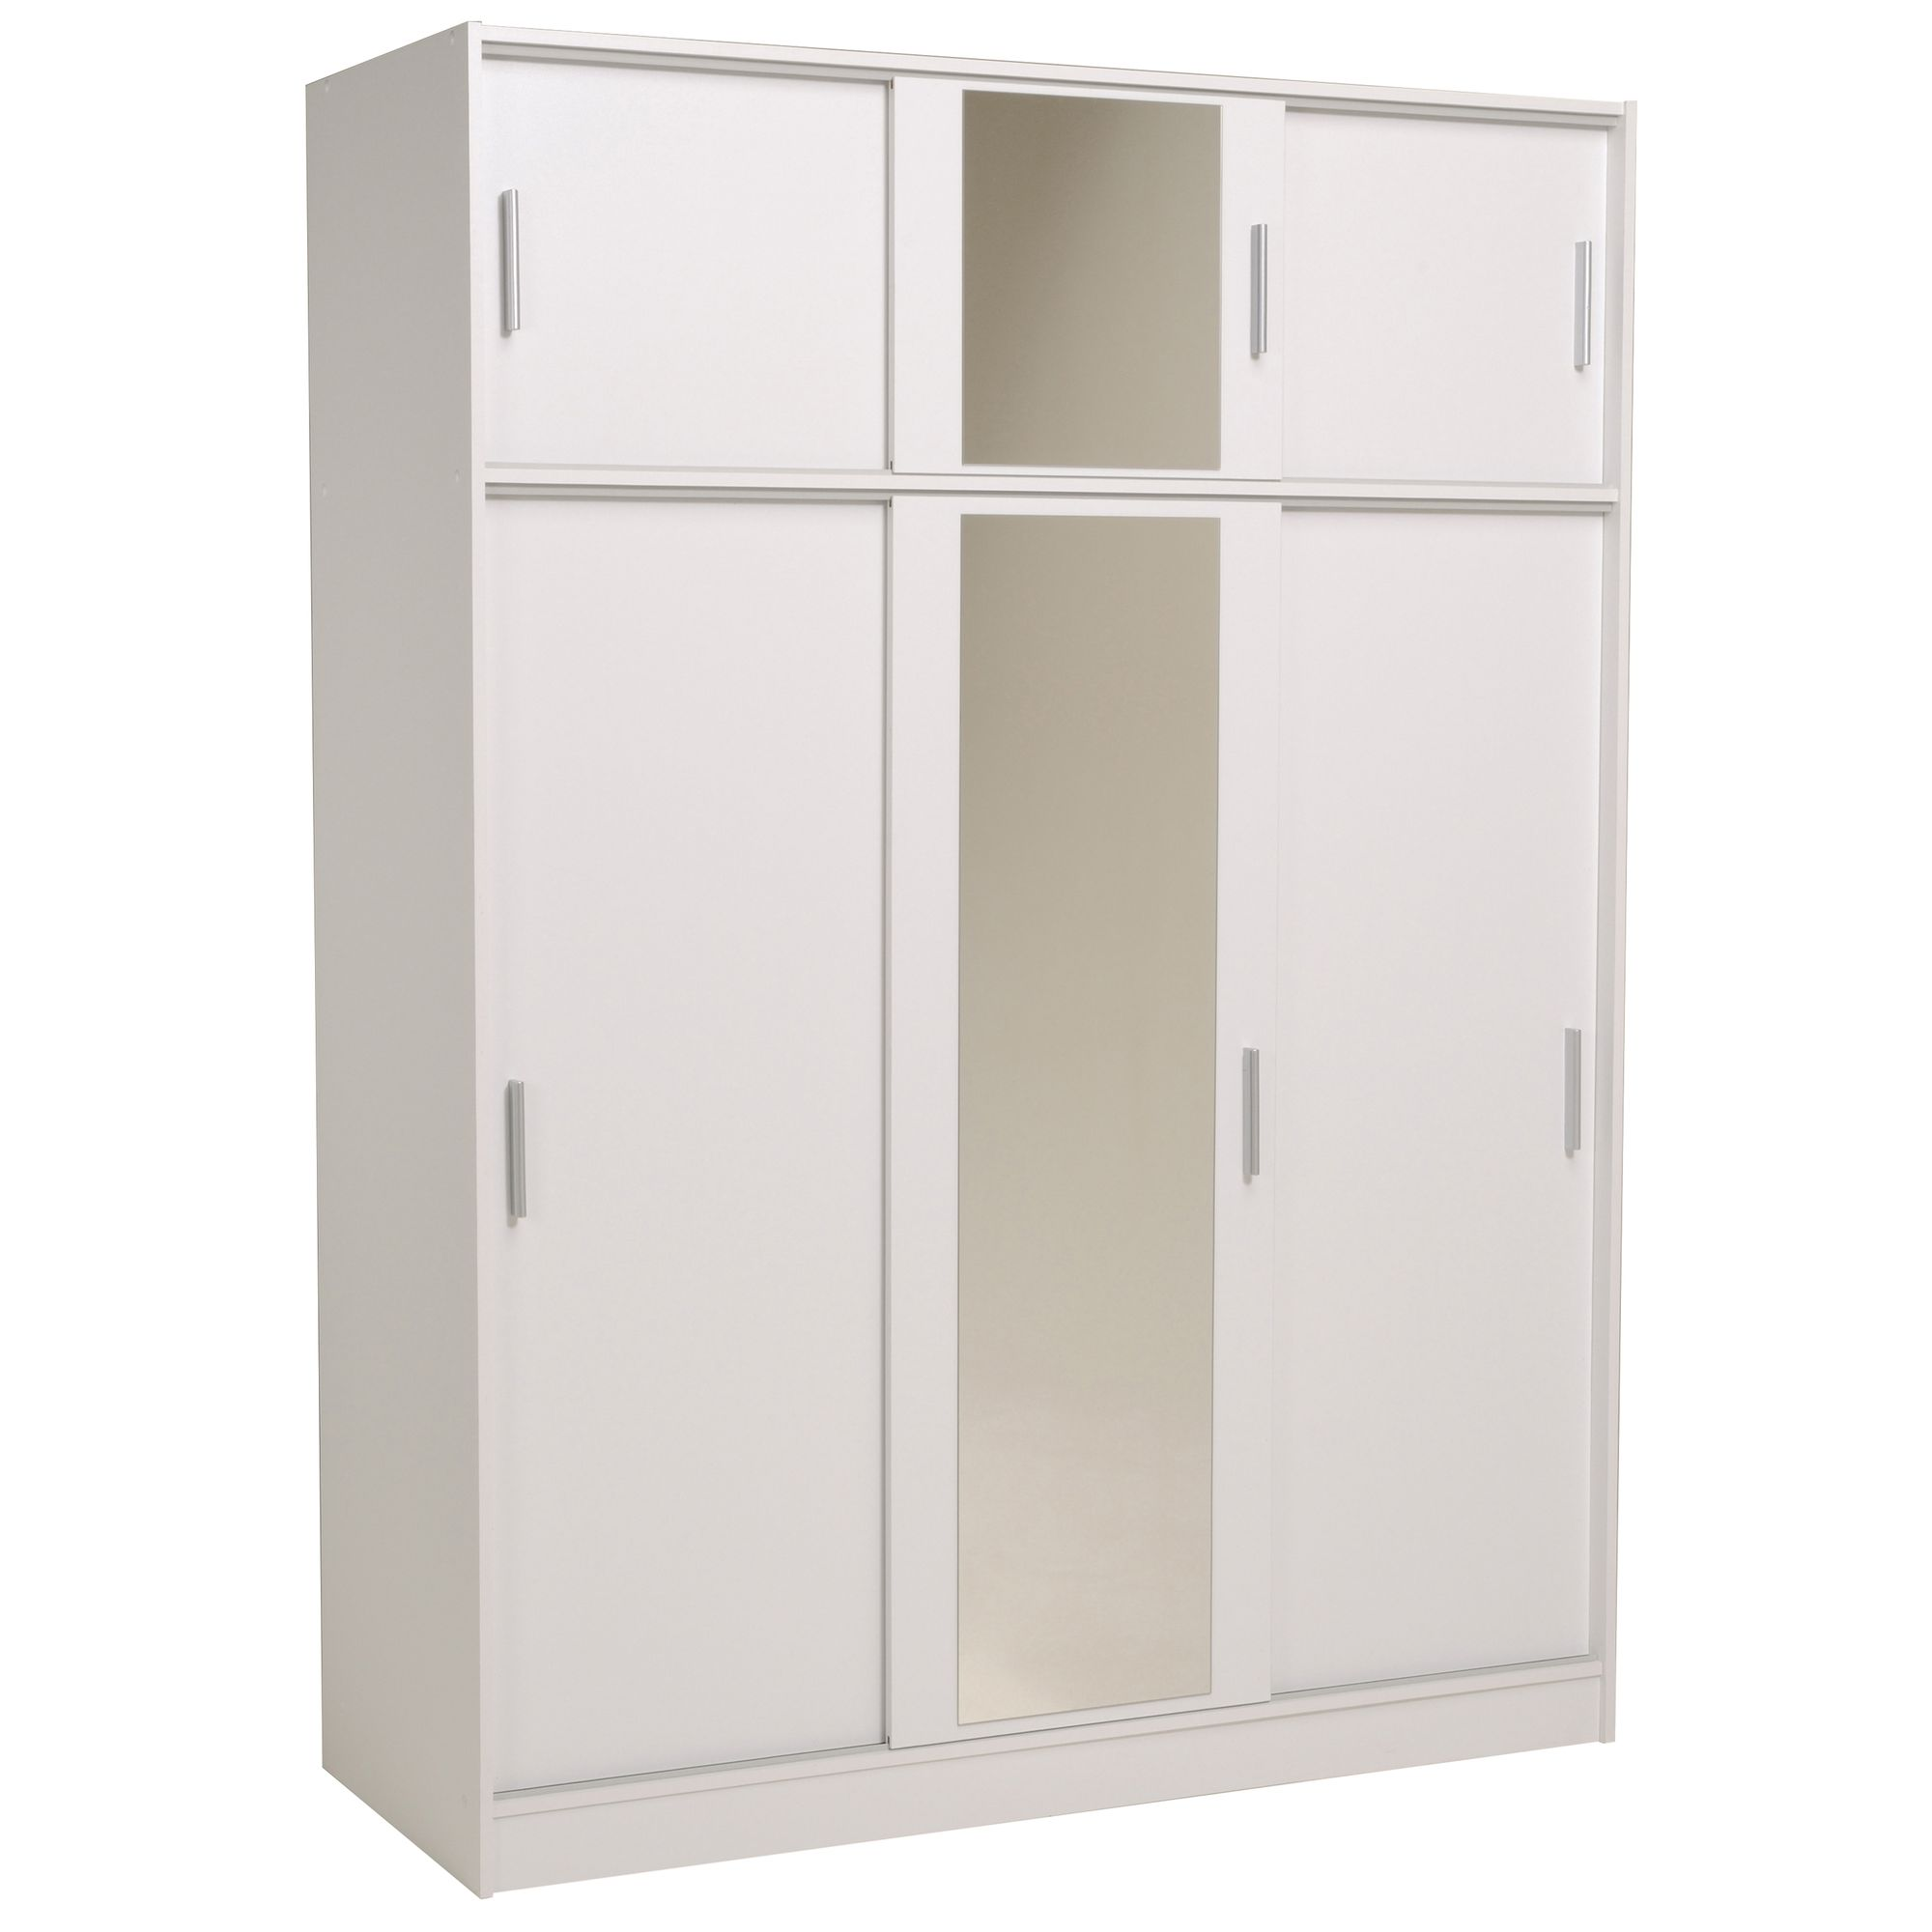 Parisot Alicia 149 cm Wardrobe - Megeve White at Tescos Direct